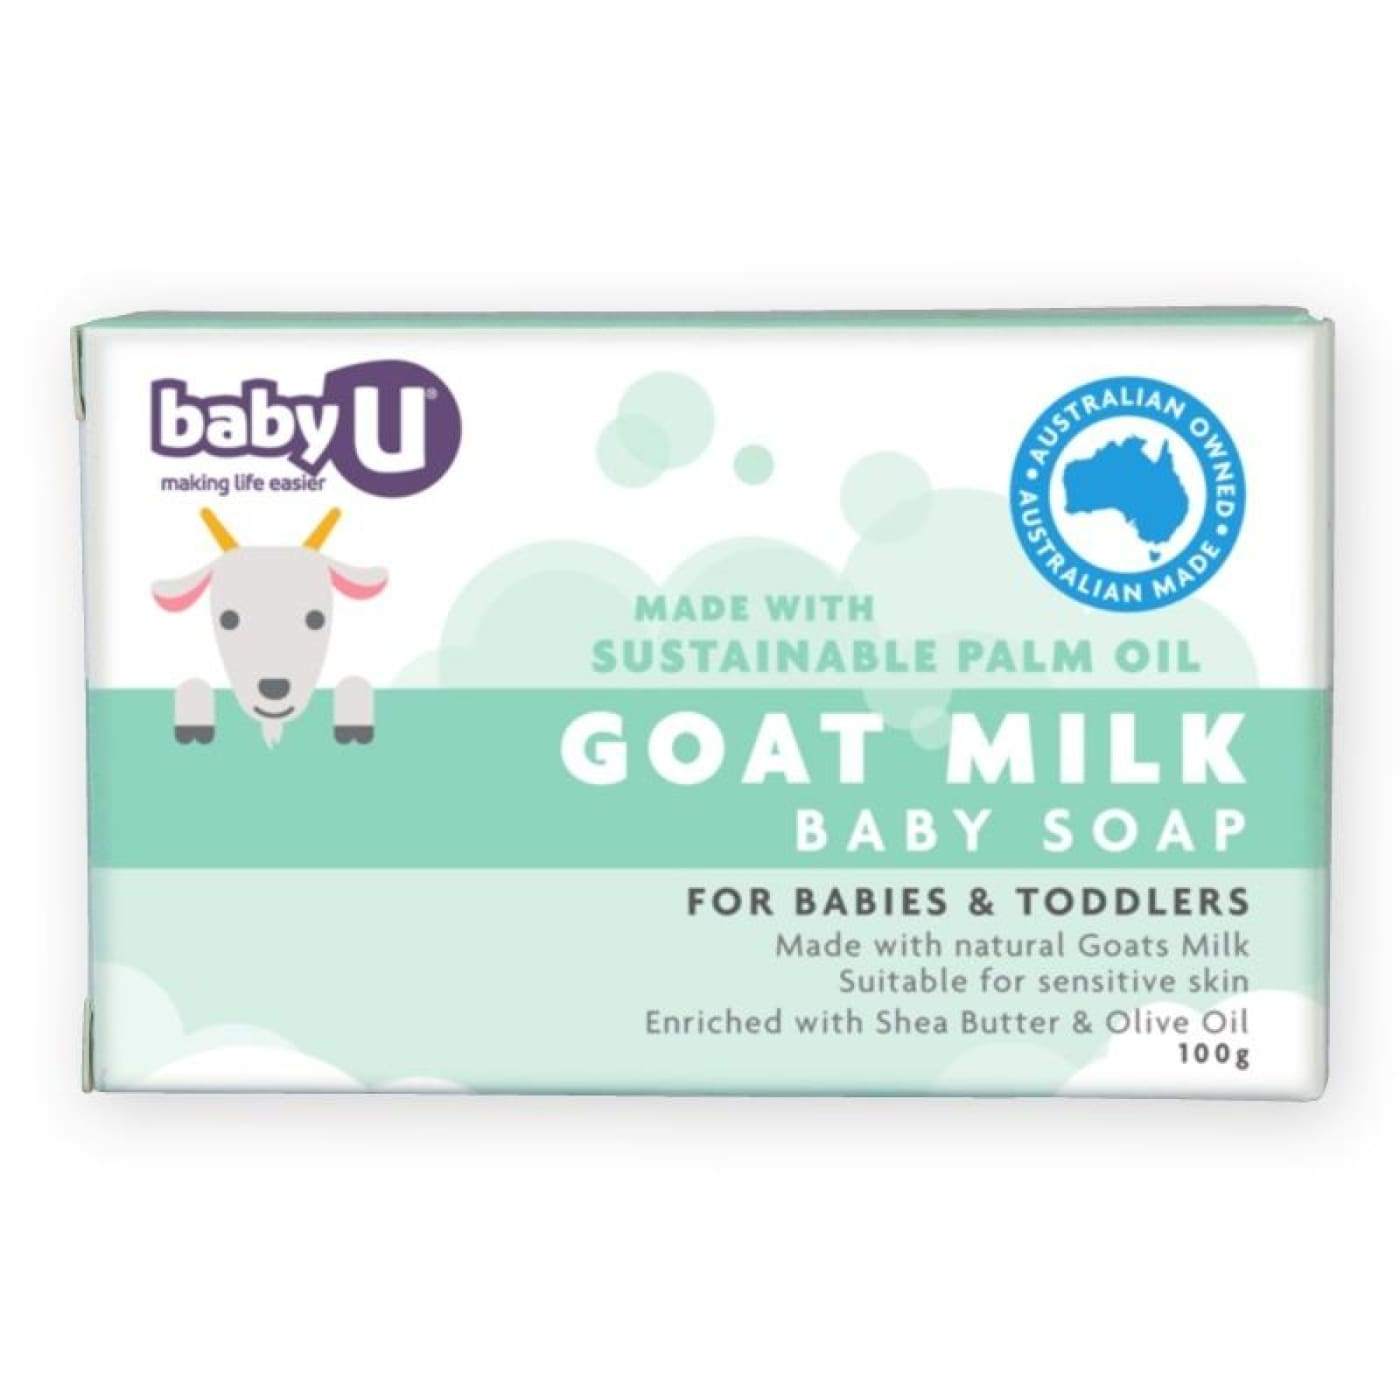 Baby U Goats Milk Baby Soap 100g - BATHTIME & CHANGING - GROOMING/HYGIENE/COSMETICS